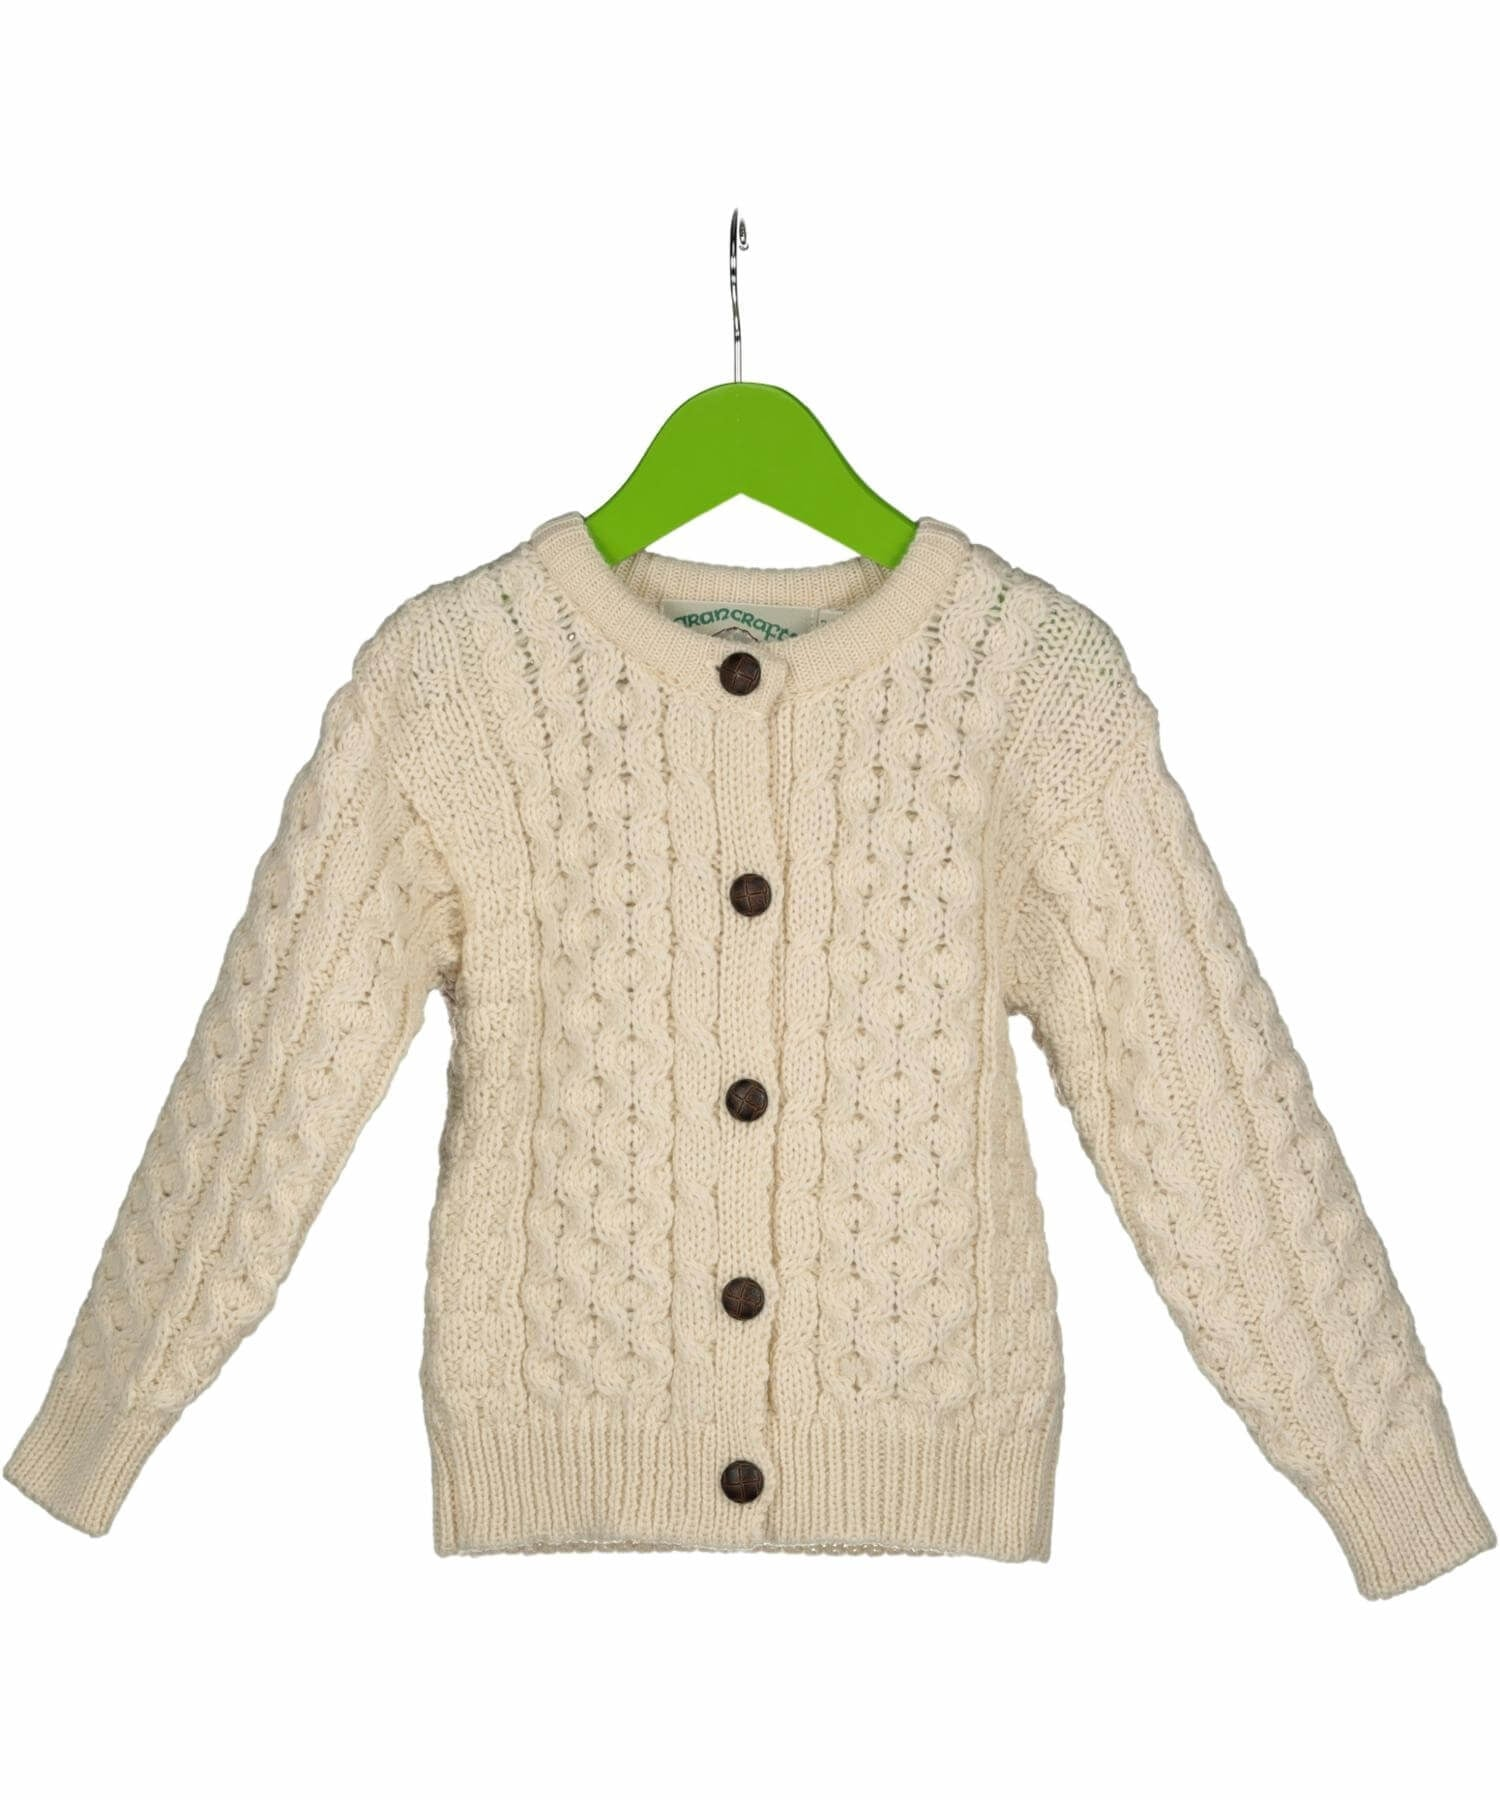 Kids Crew Neck Cardigan - Natural - [Aran Crafts] - Childrens Sweaters & Cardigans - Irish Gifts